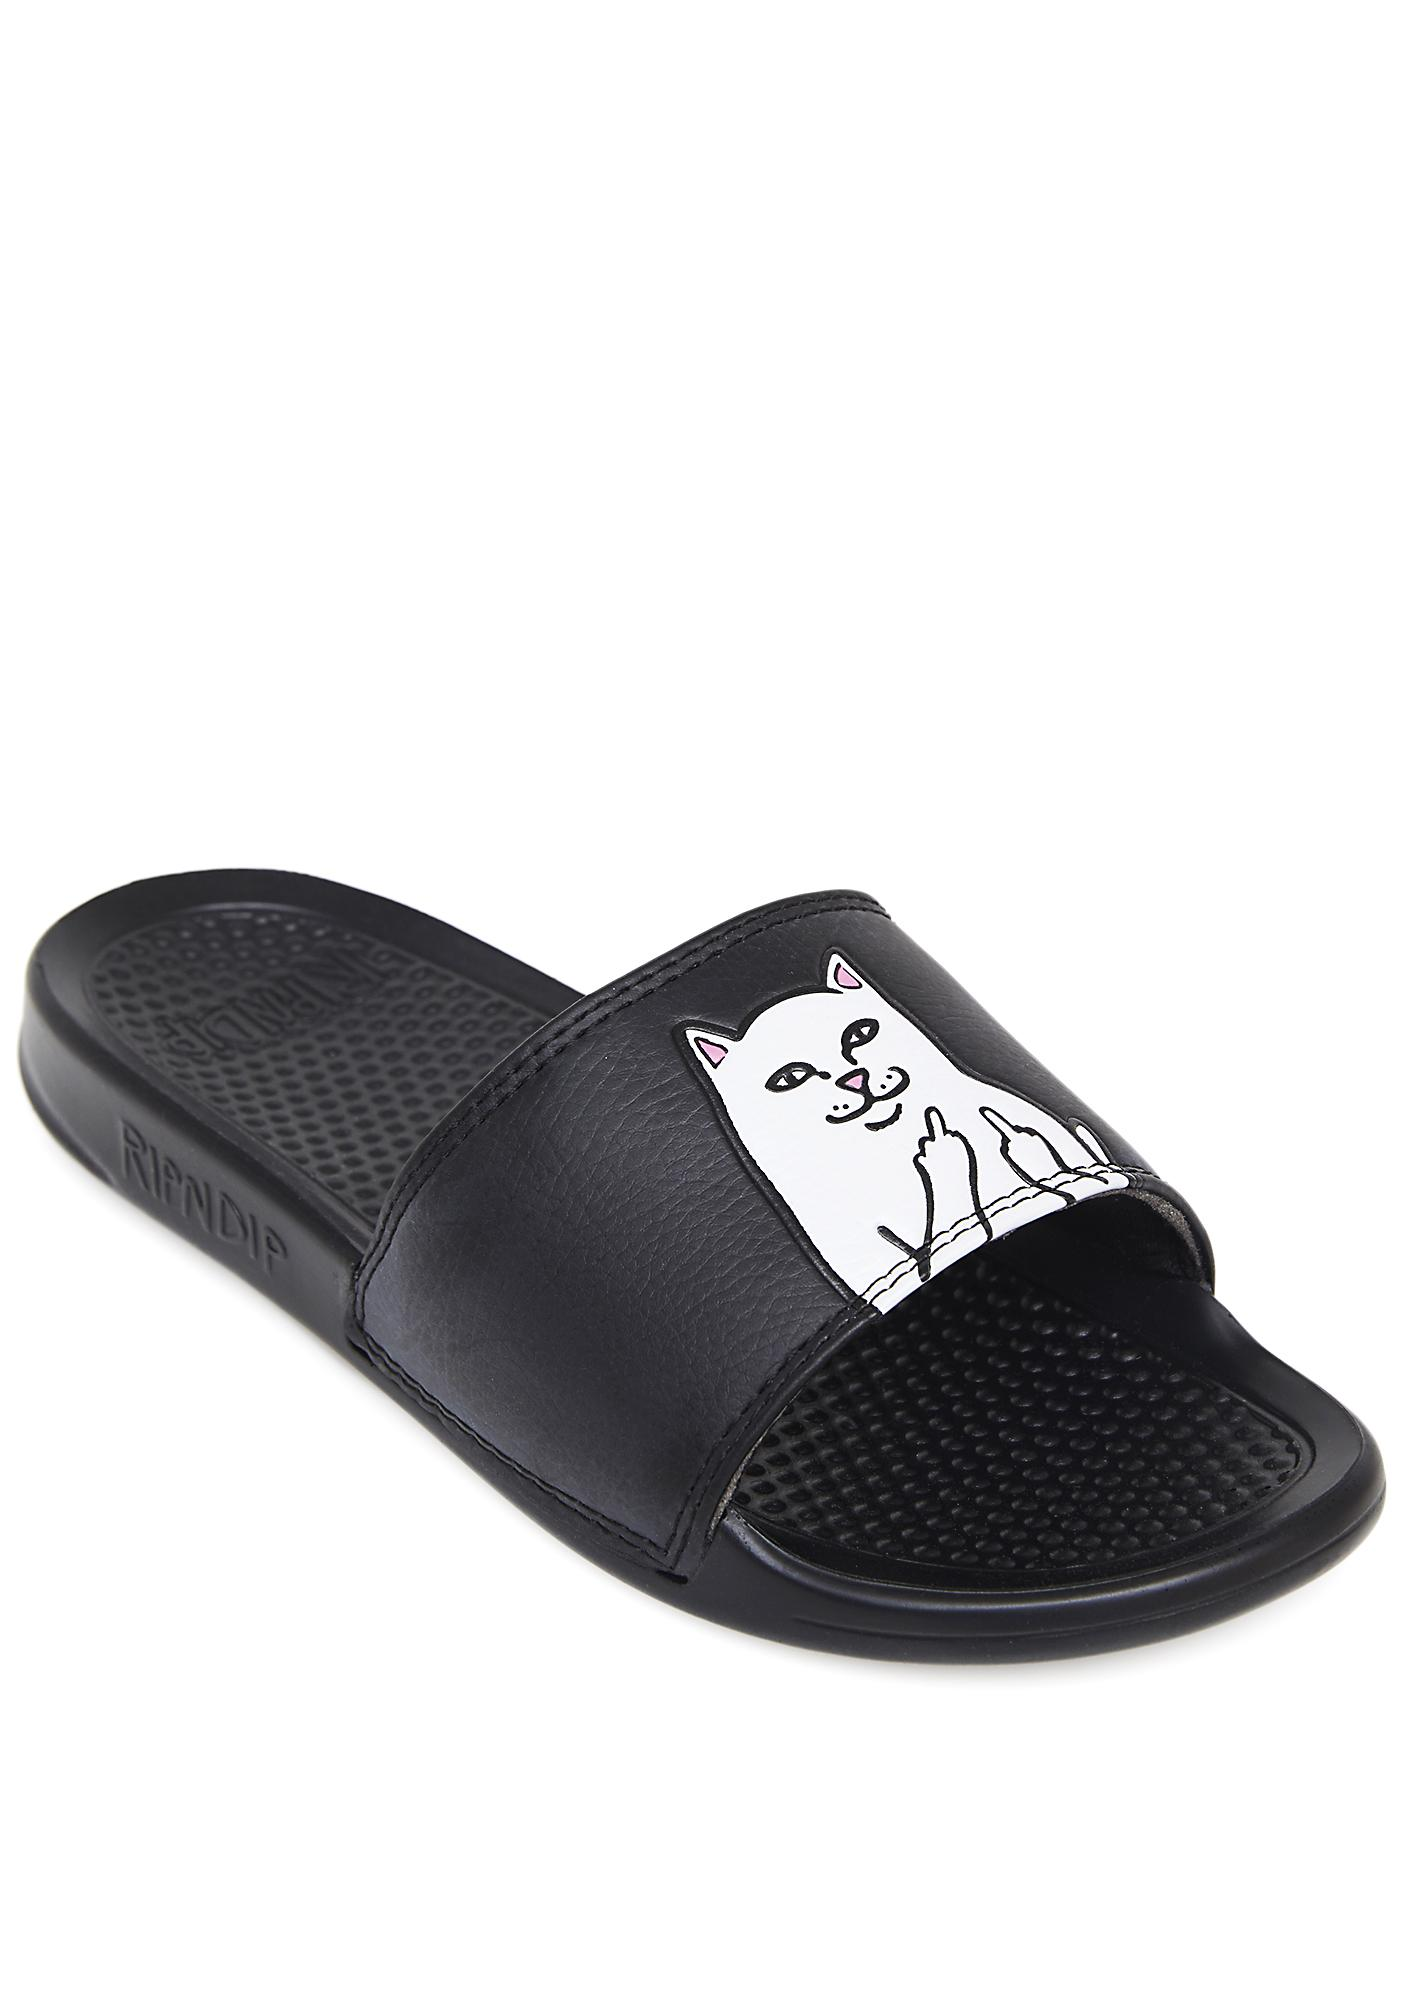 RIPNDIP Lord Nermal Slides